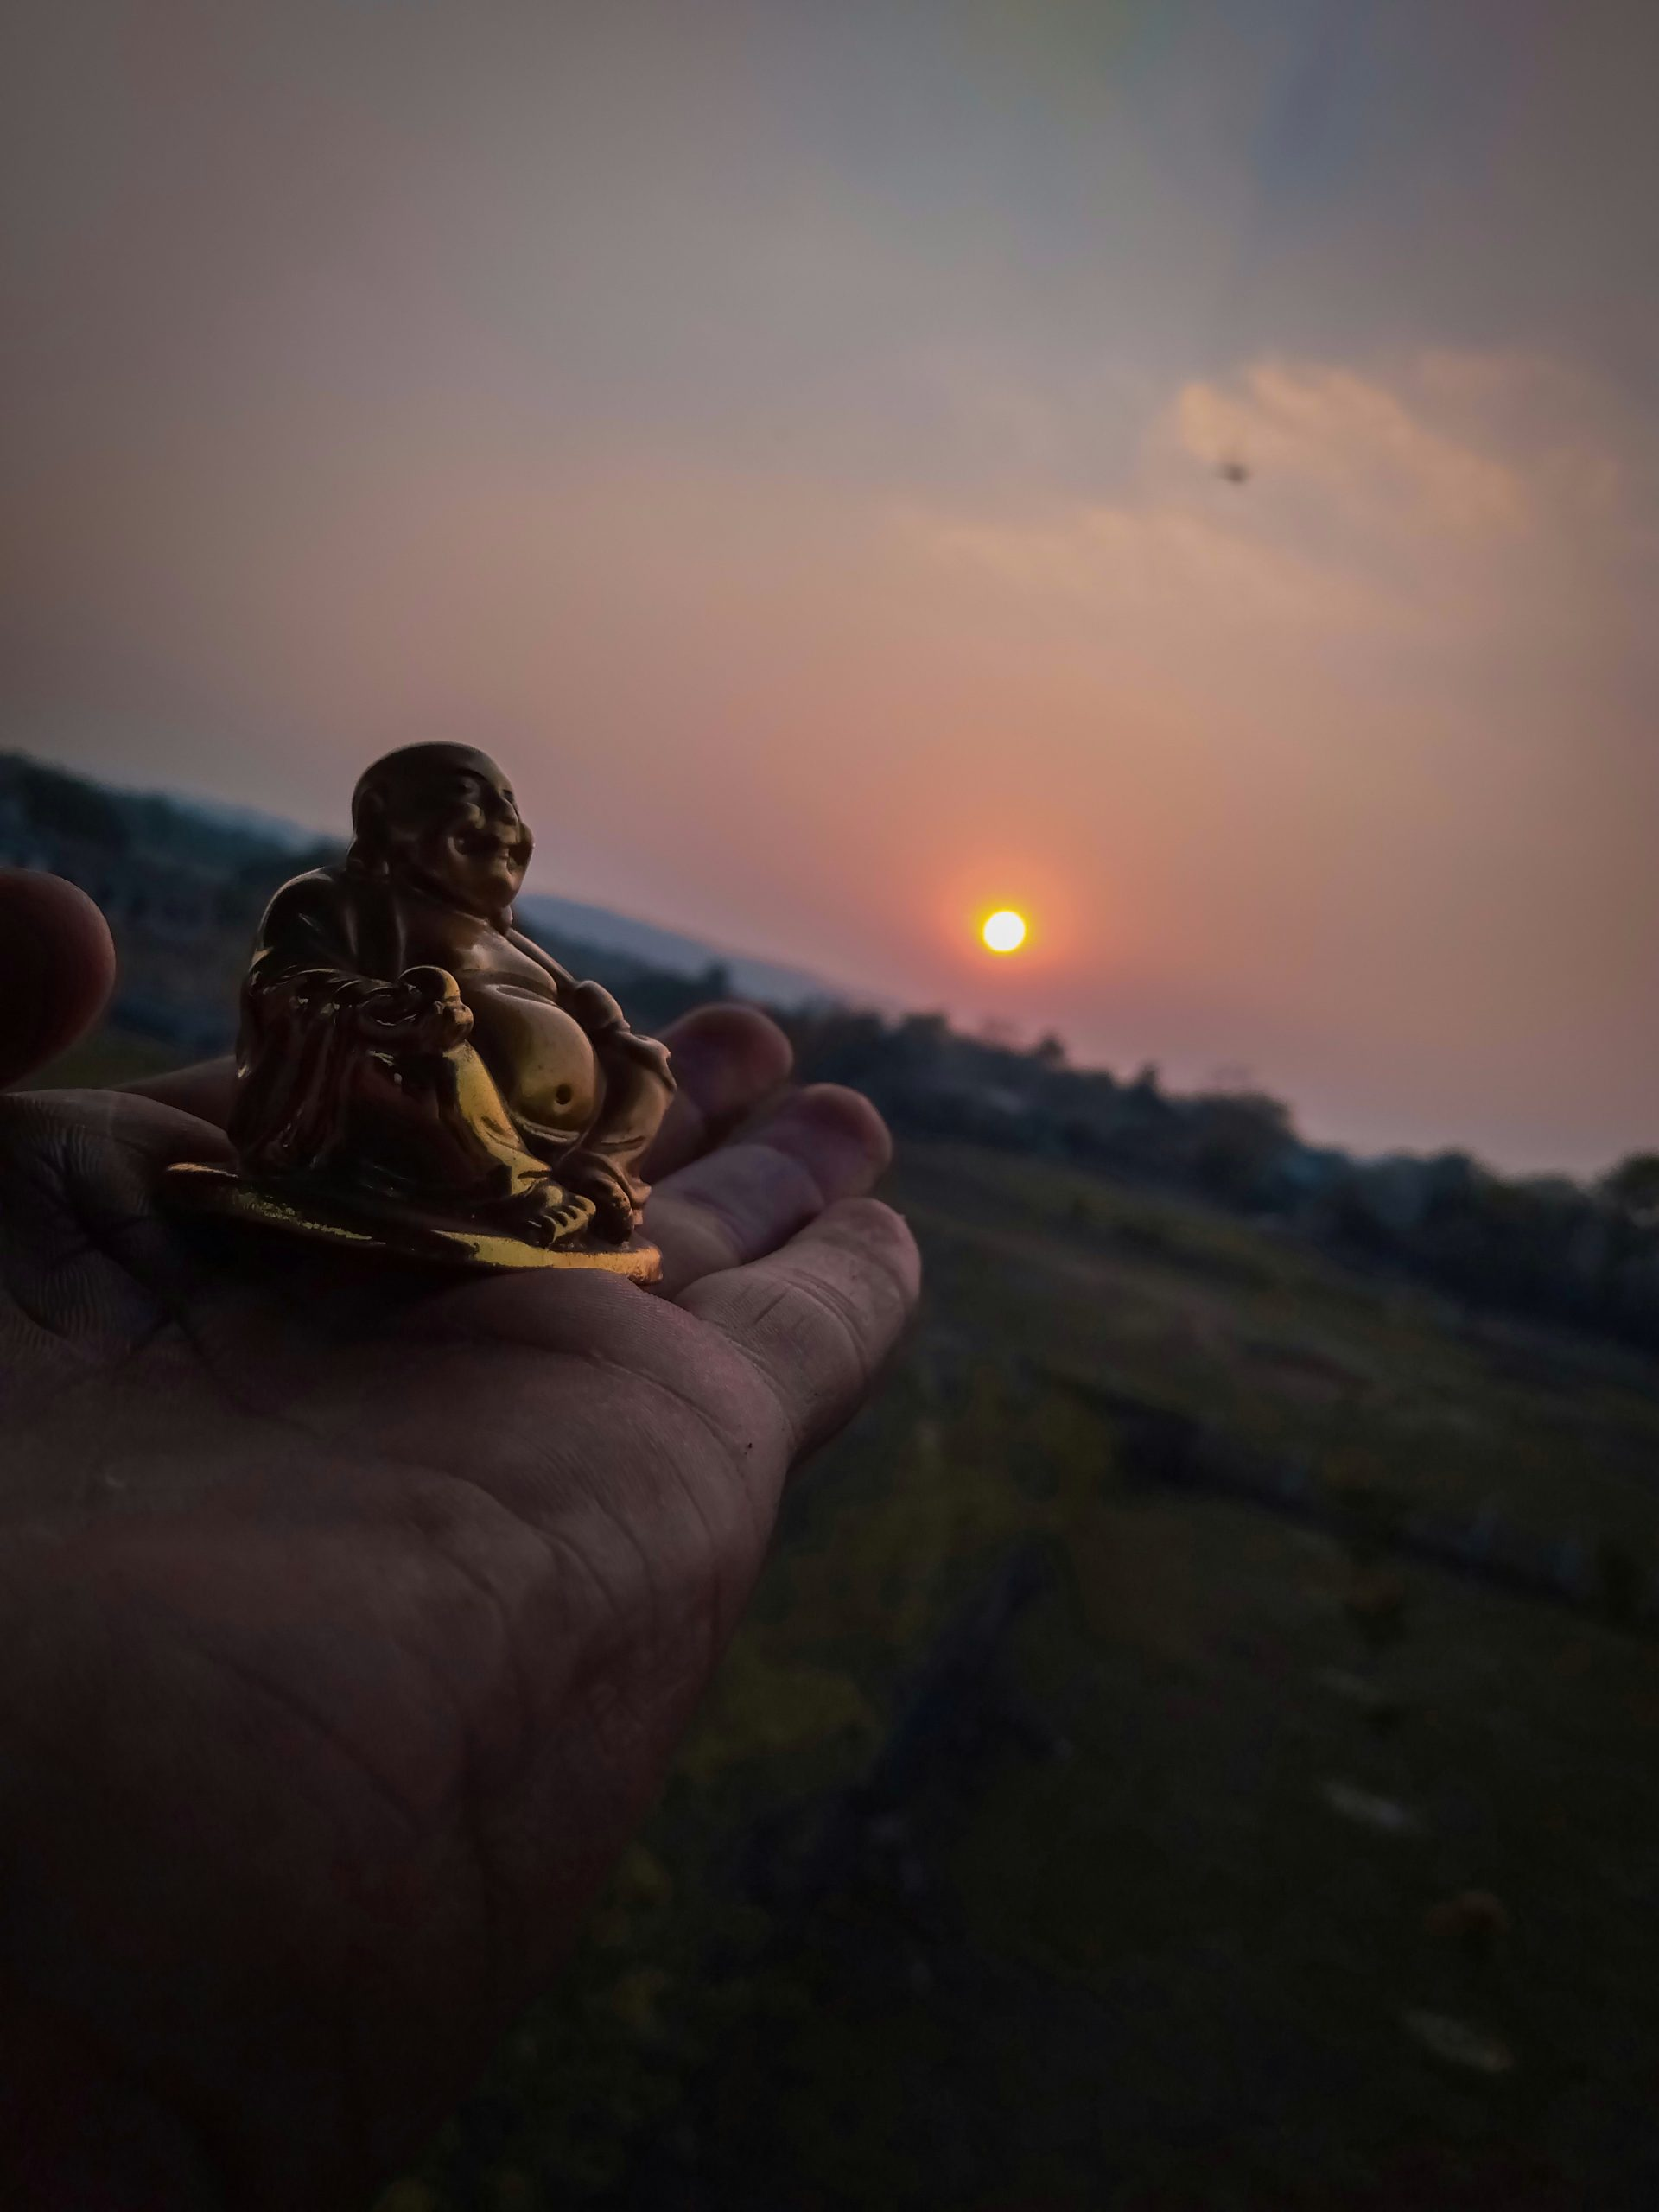 Sunset with Laughing Buddha